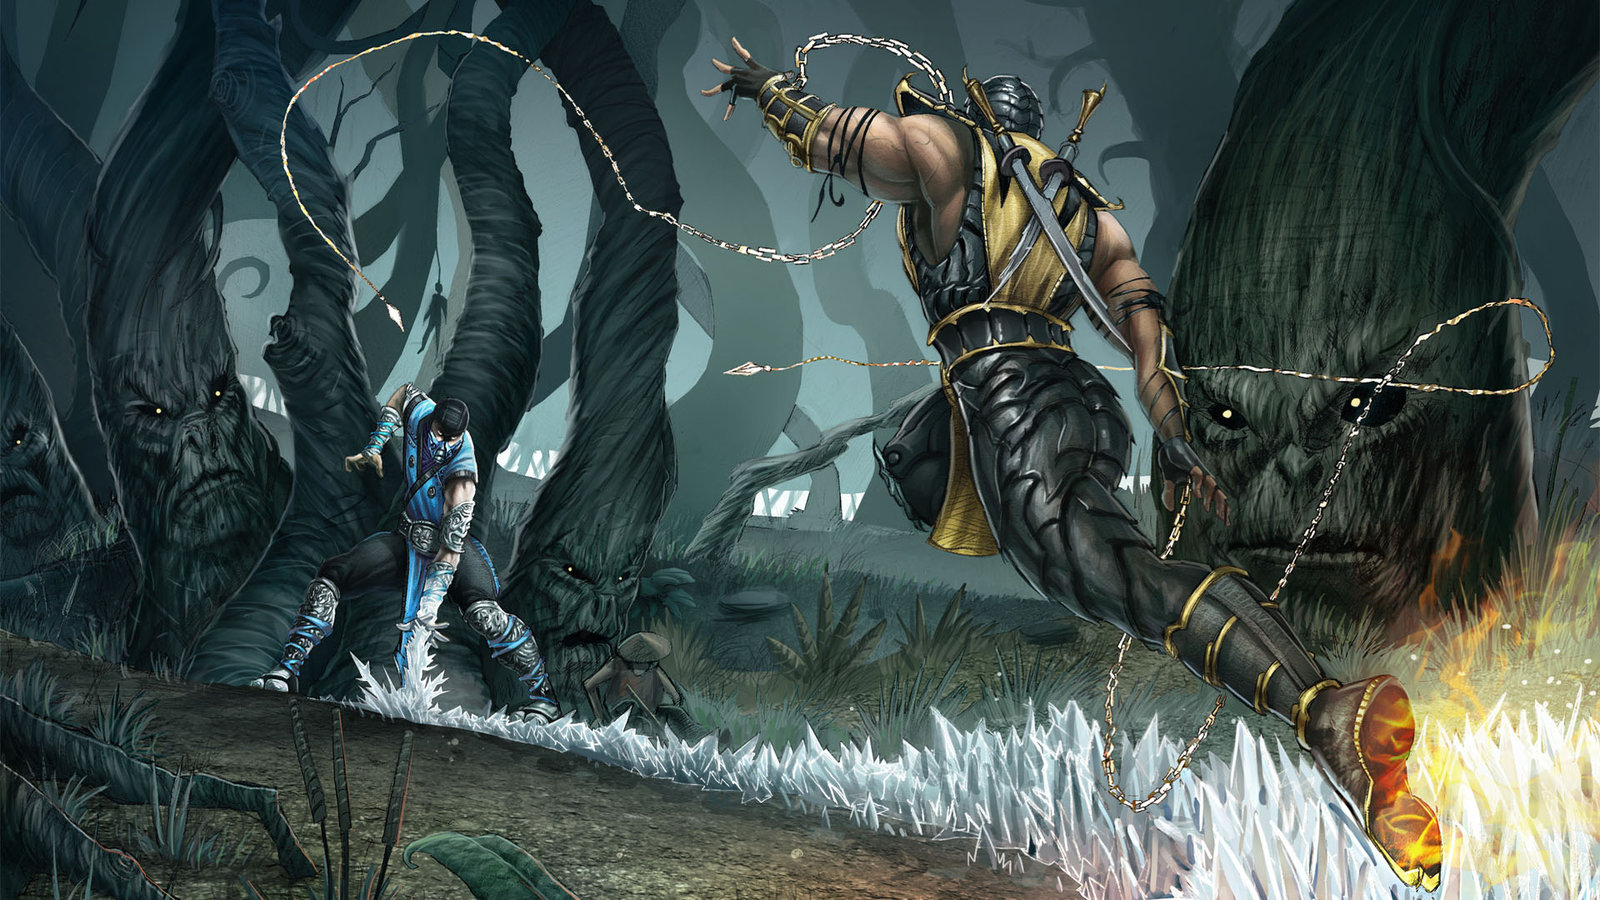 Mortal kombat HD & Widescreen Wallpaper 0.728117825059877